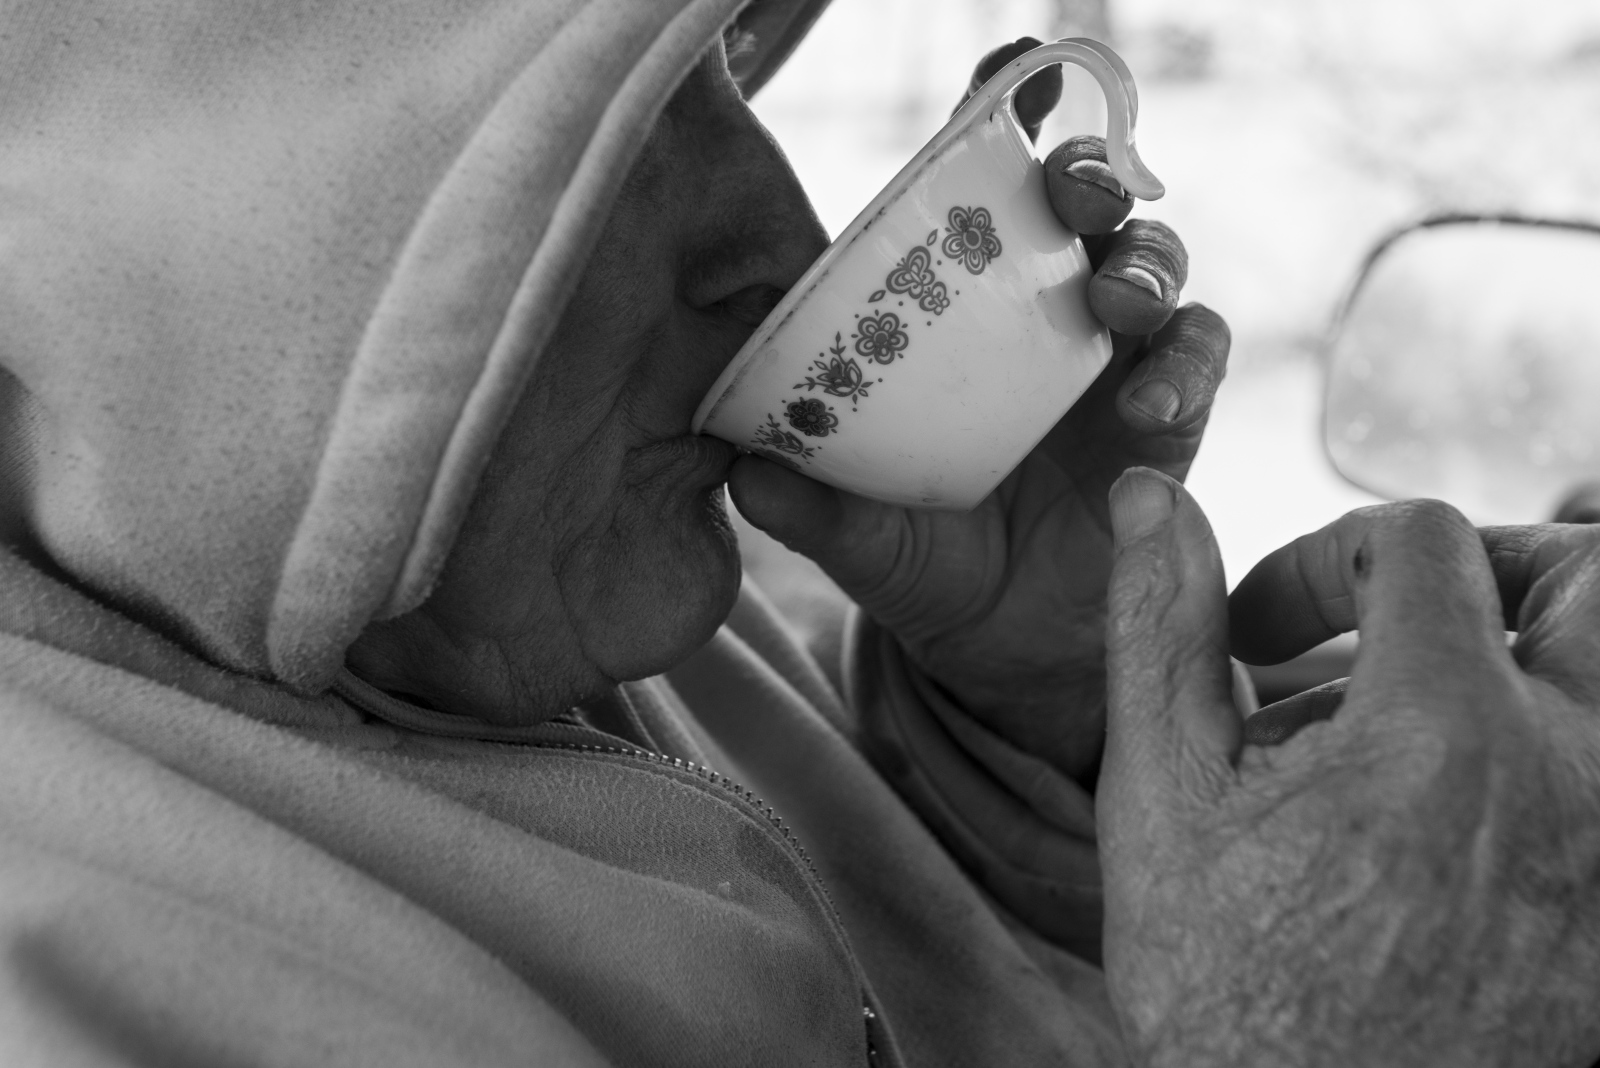 Dorsel Bibbee sips coffee from a ceramic mug he keeps with him in his truck before going out to help dig a grave at Fairview Cemetery near Coolville, Ohio, in February 2015.